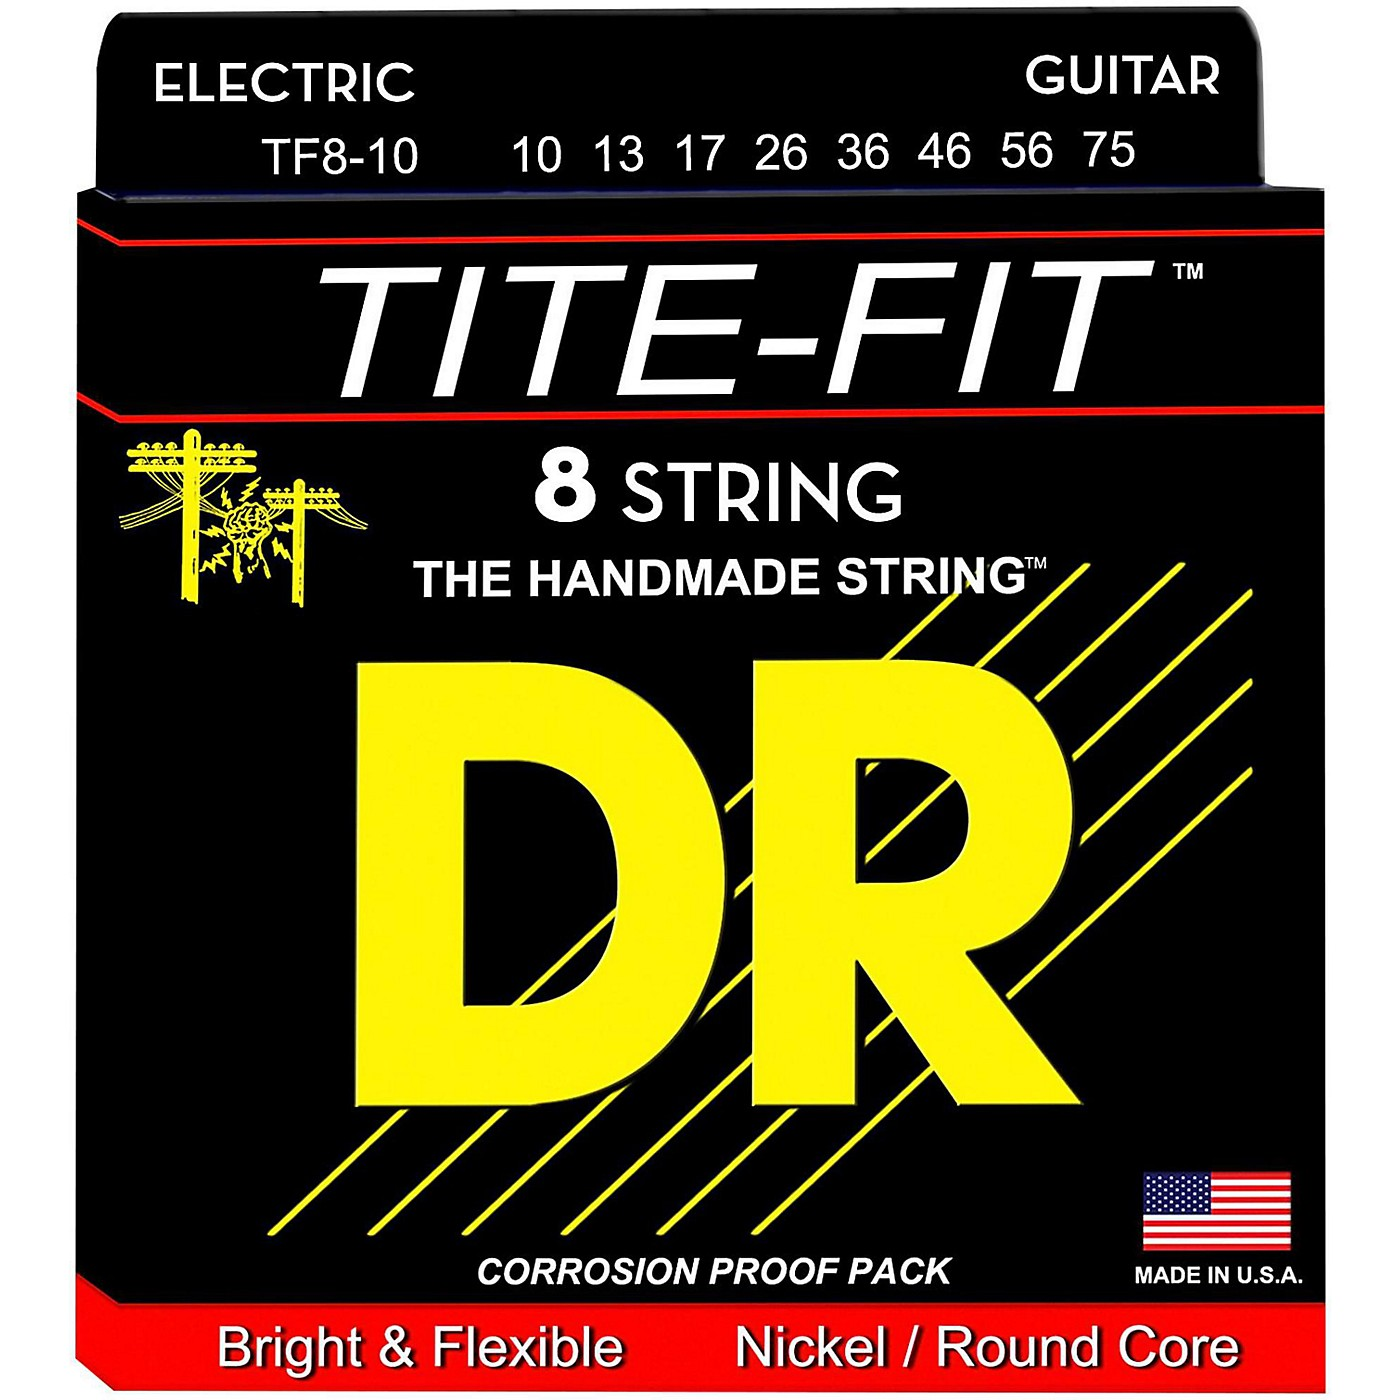 DR Strings Tite-Fit Nickel Plated Medium 8-String Electric Guitar Strings (10-75) thumbnail